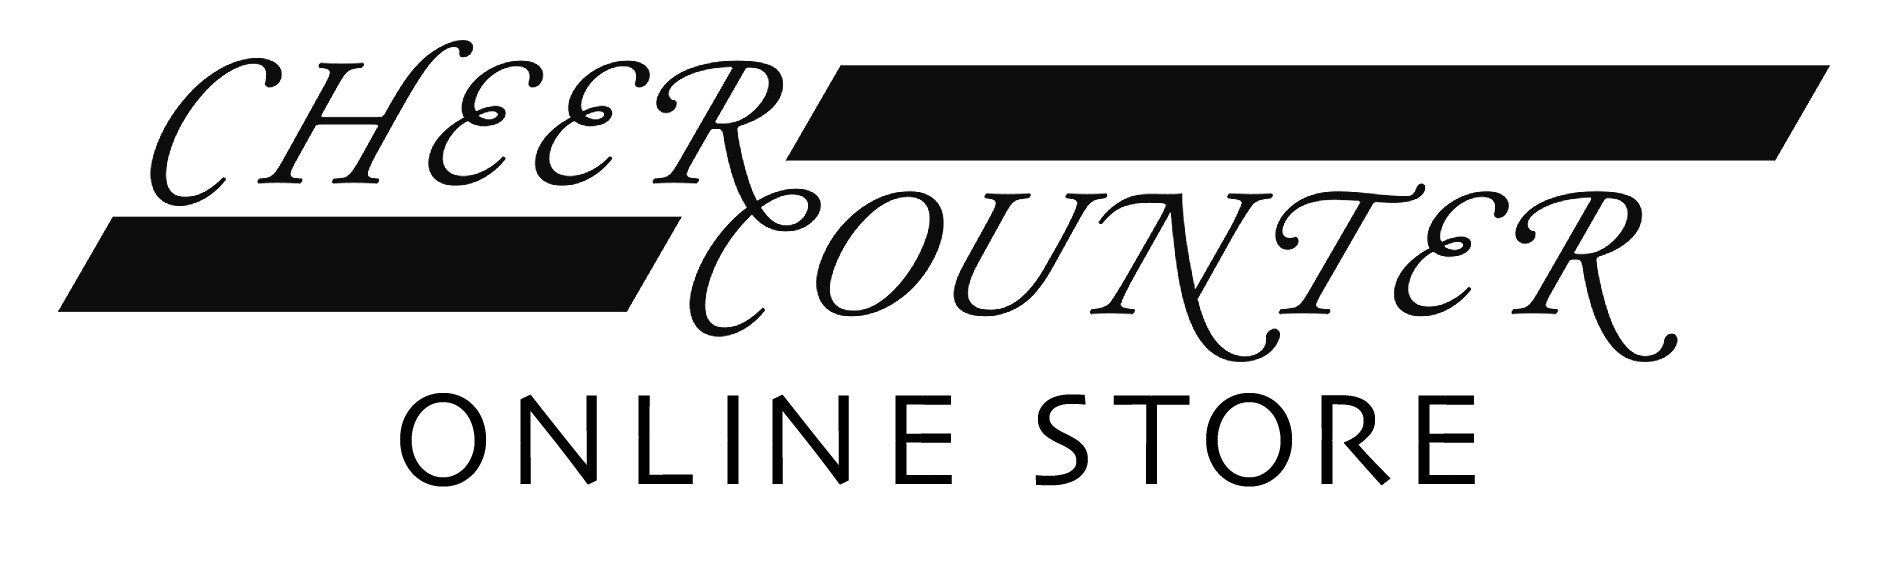 CHEERCOUNTER ONLINE STORE